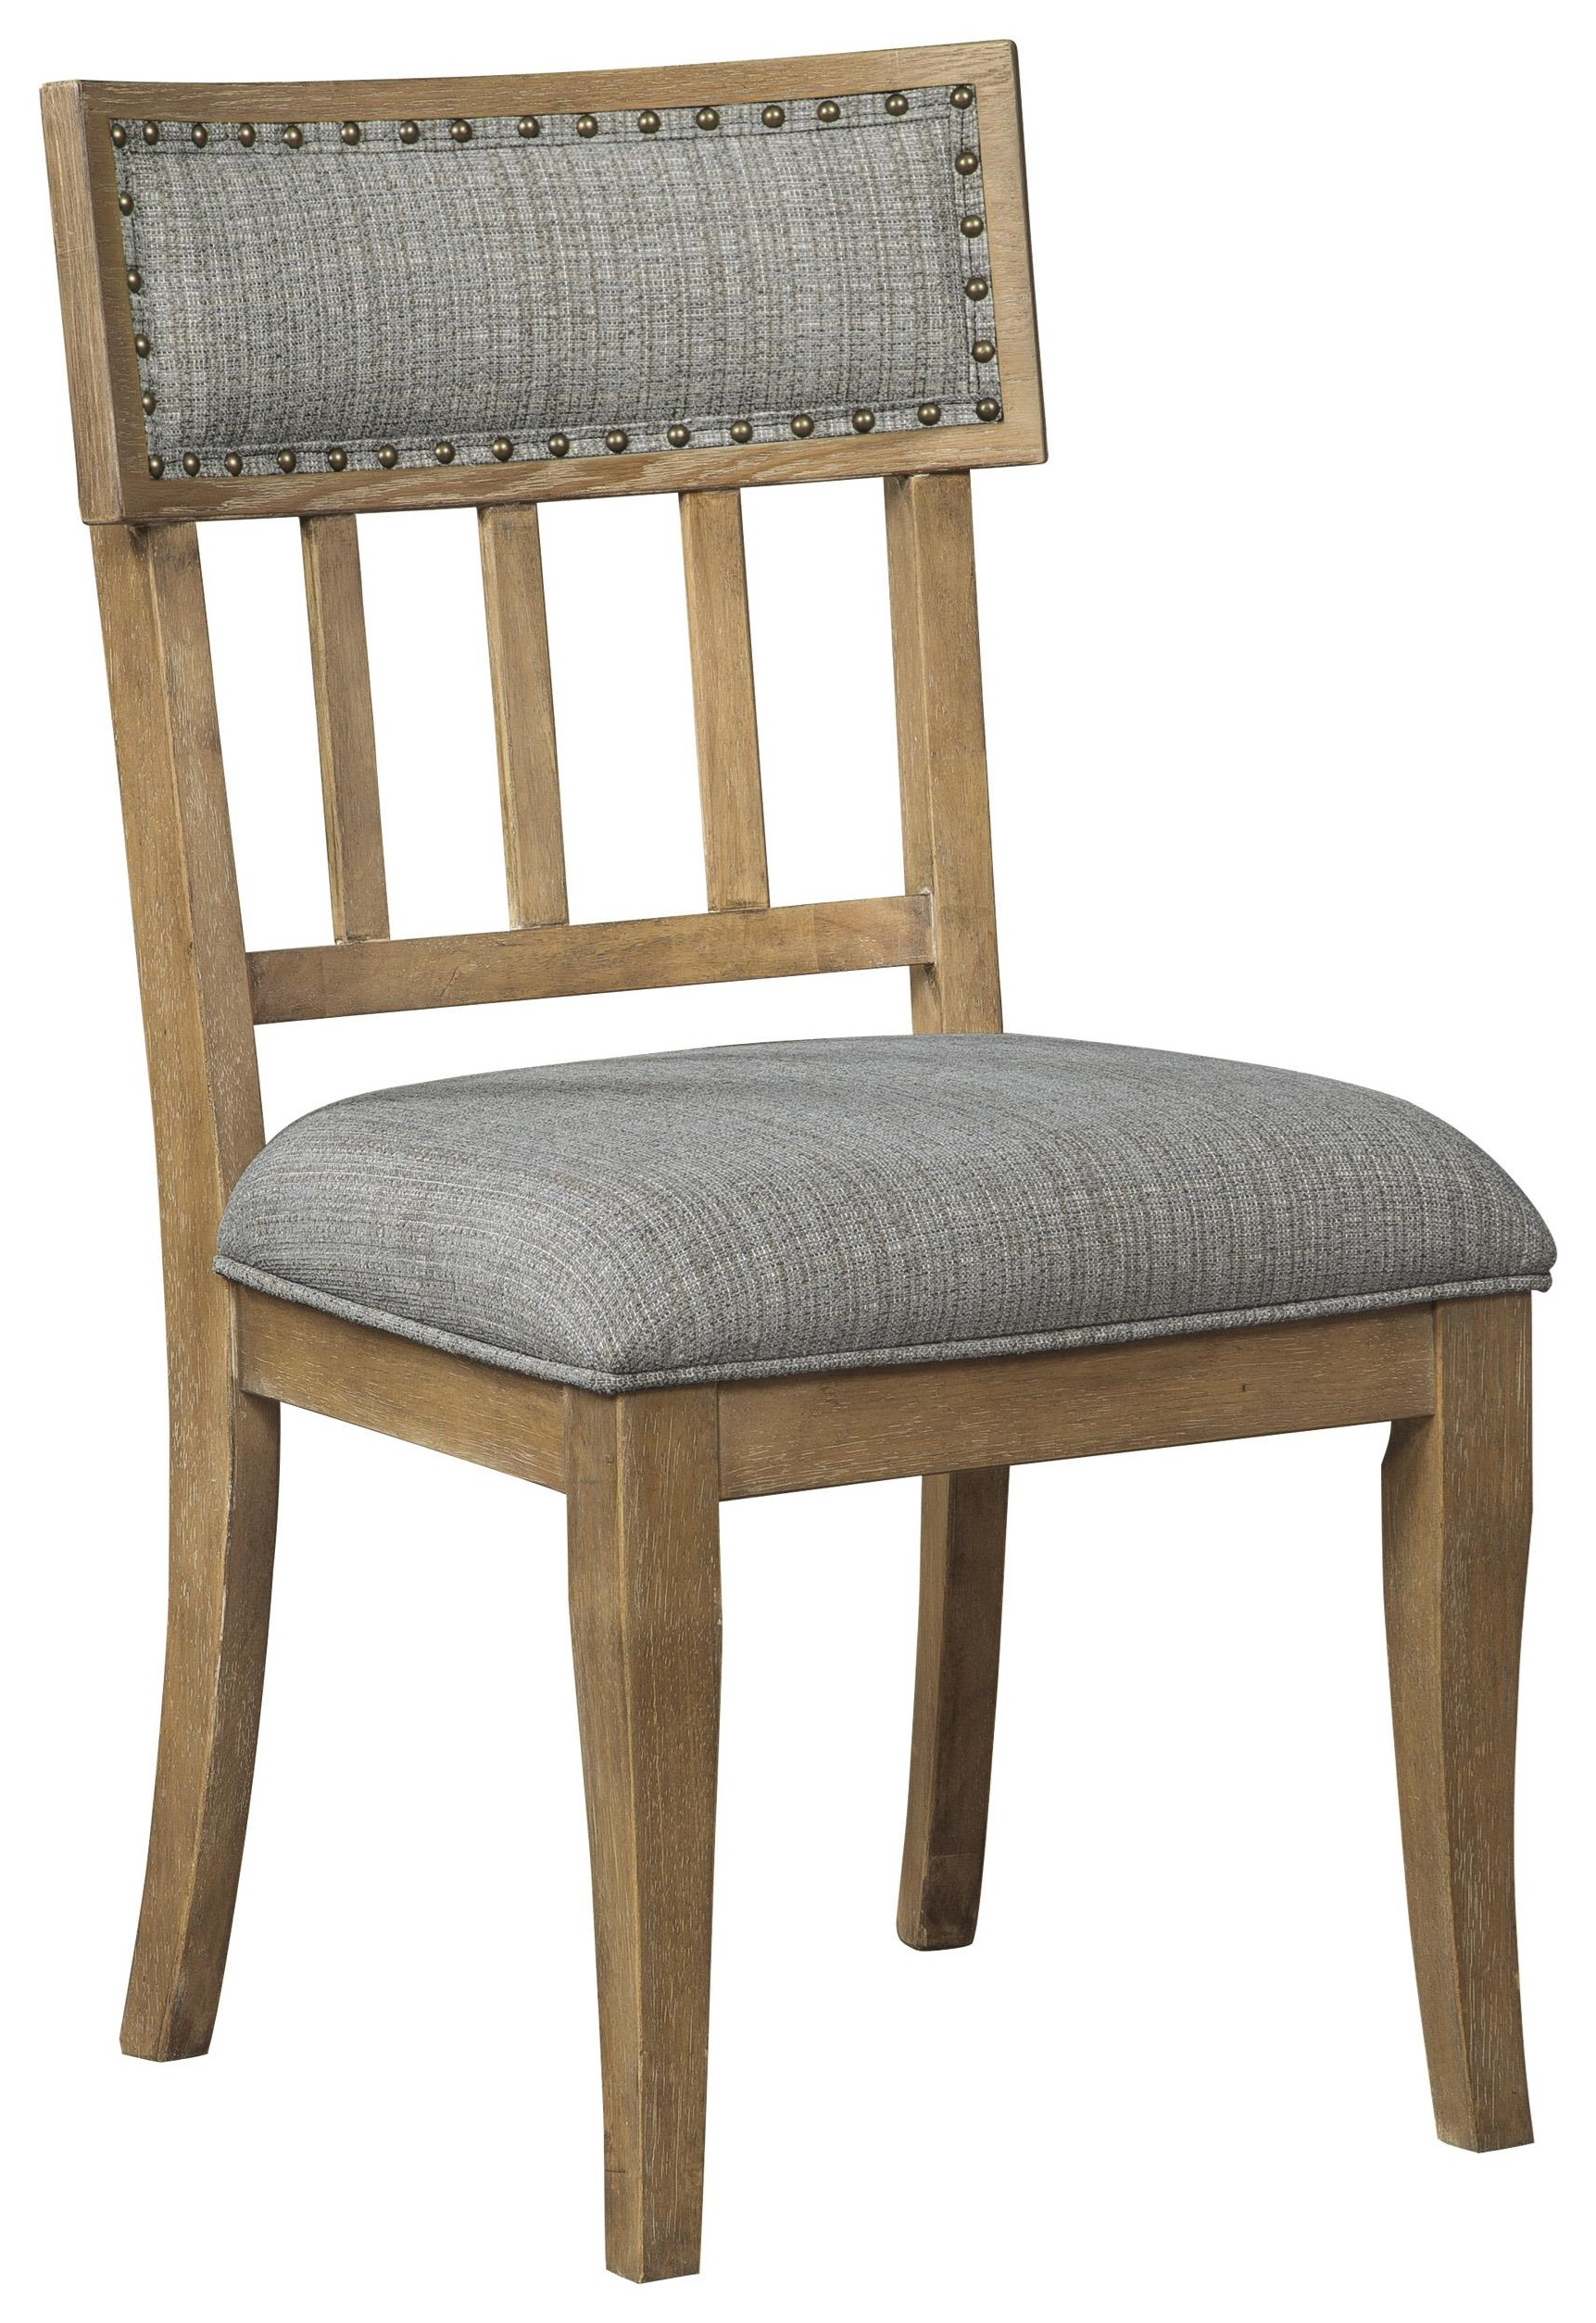 Ollesburg Ollesburg Side Chair by Ashley at Morris Home